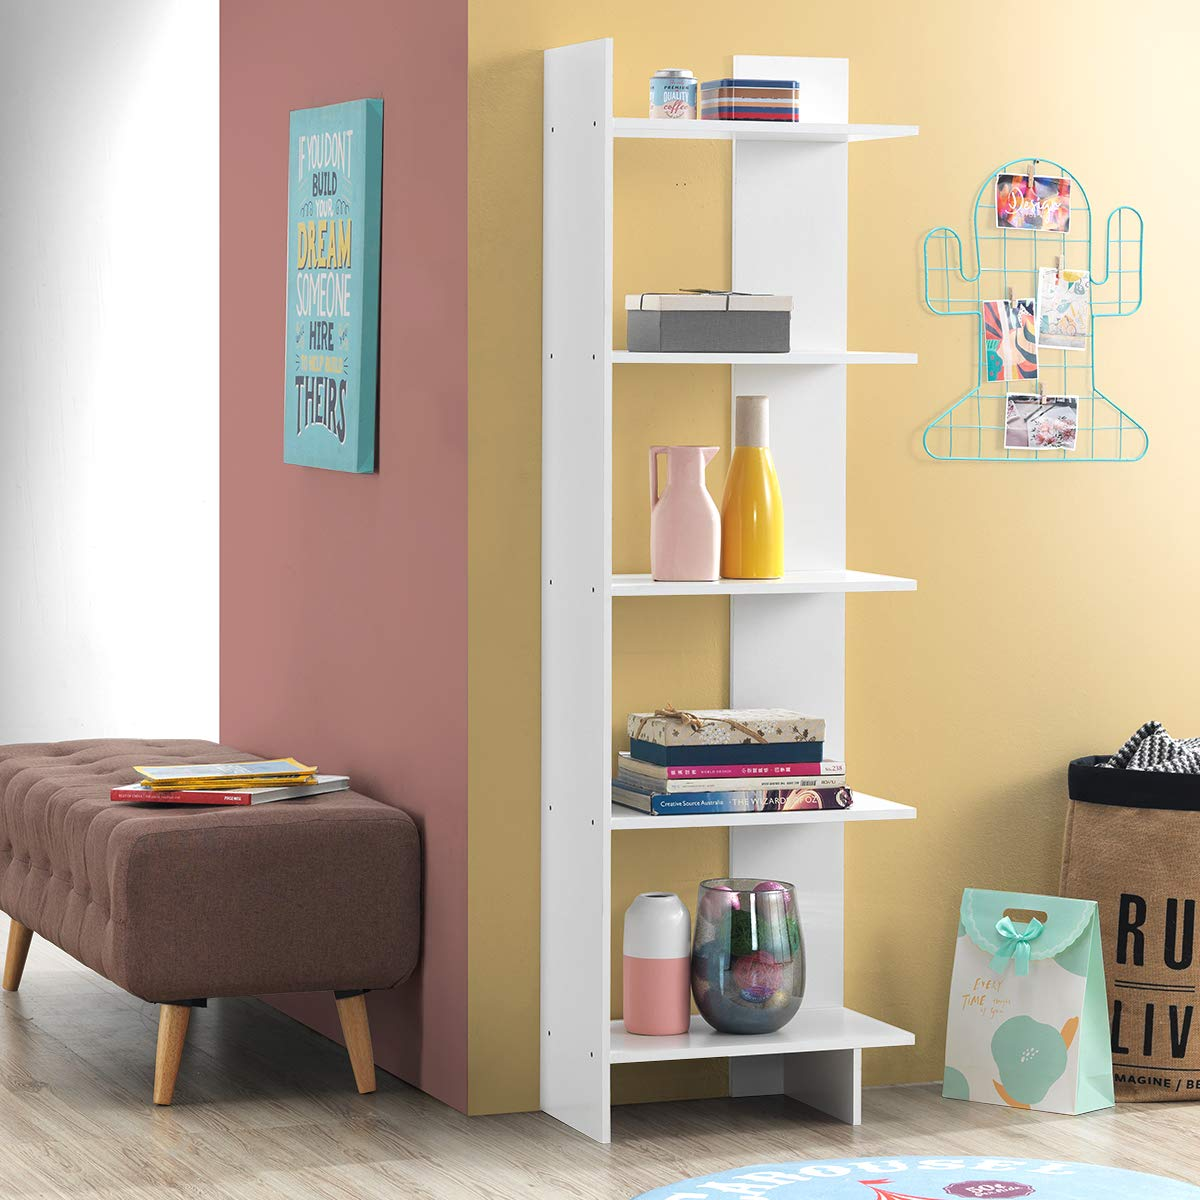 Tangkula 5-Shelf Bookcase, Room Divider and Display Shelf, Freestanding Decorative Storage Shelving, Wooden Bookshelf for Home Living Room Office Bedroom, Room Divider Bookshelf White, 1